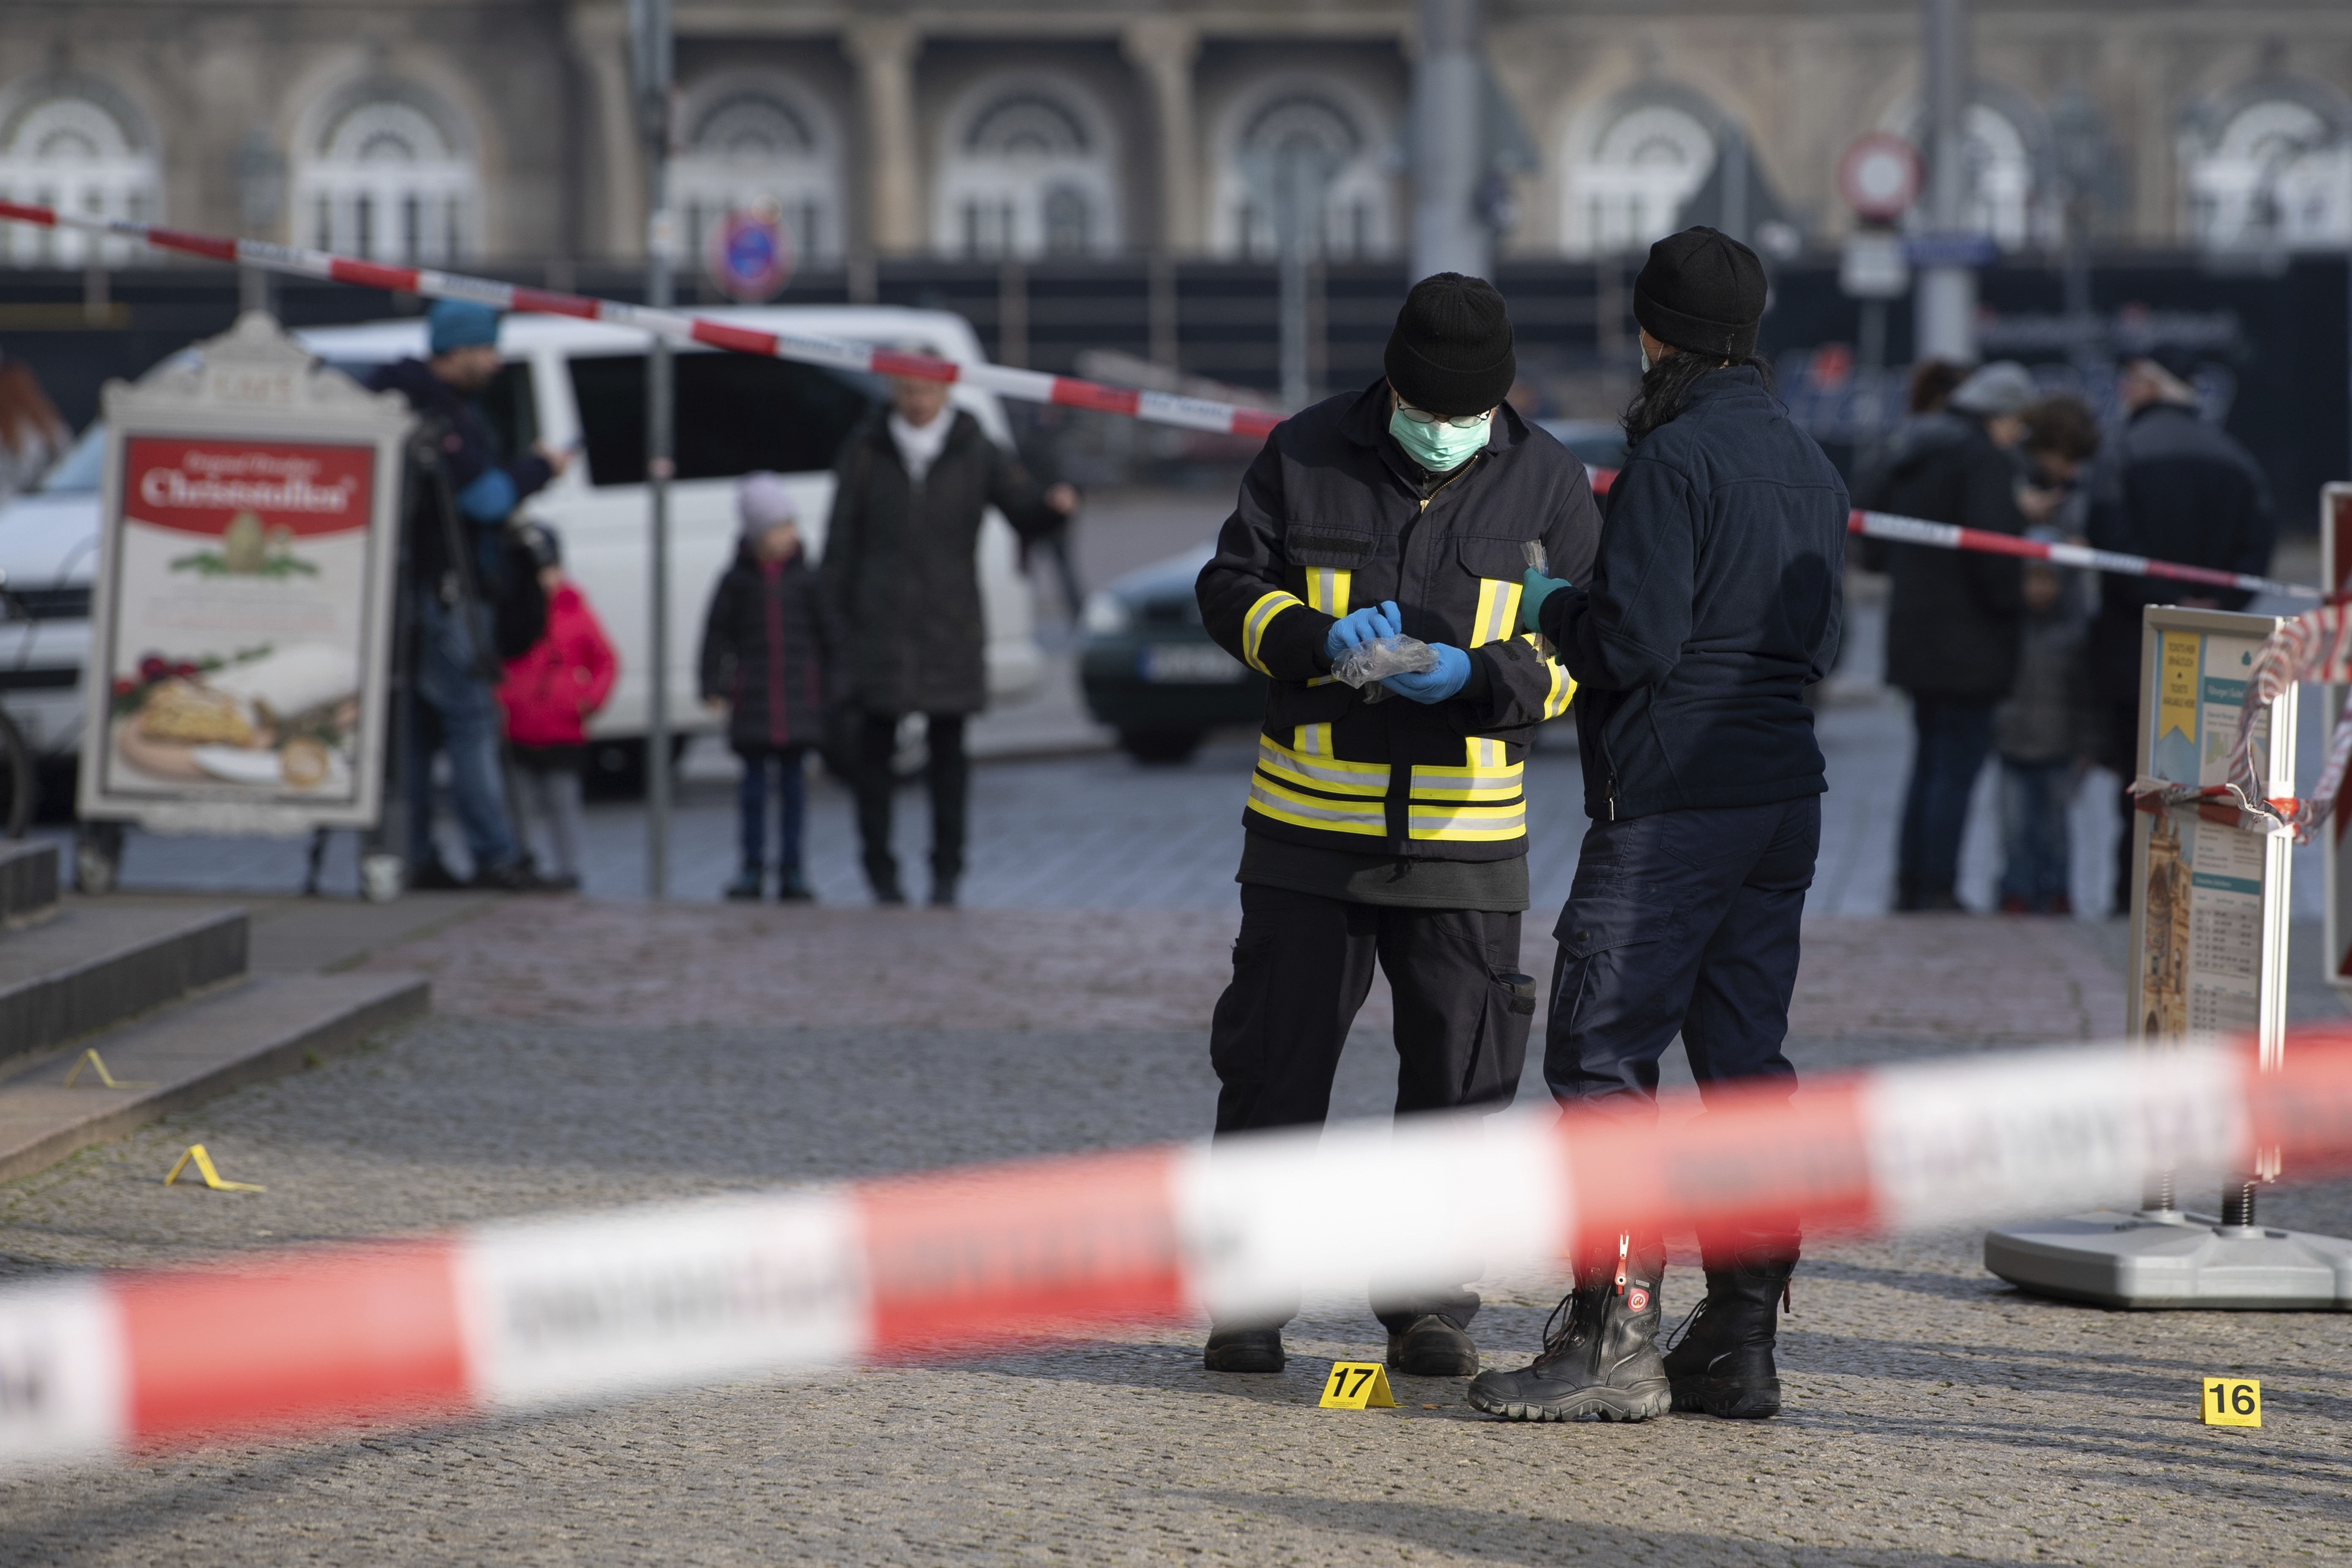 Police officers stand behind a caution tape at the Schinkelwache building in Dresden Monday, Nov. 25, 2019.{ } (Sebastian Kahnert/dpa via AP)